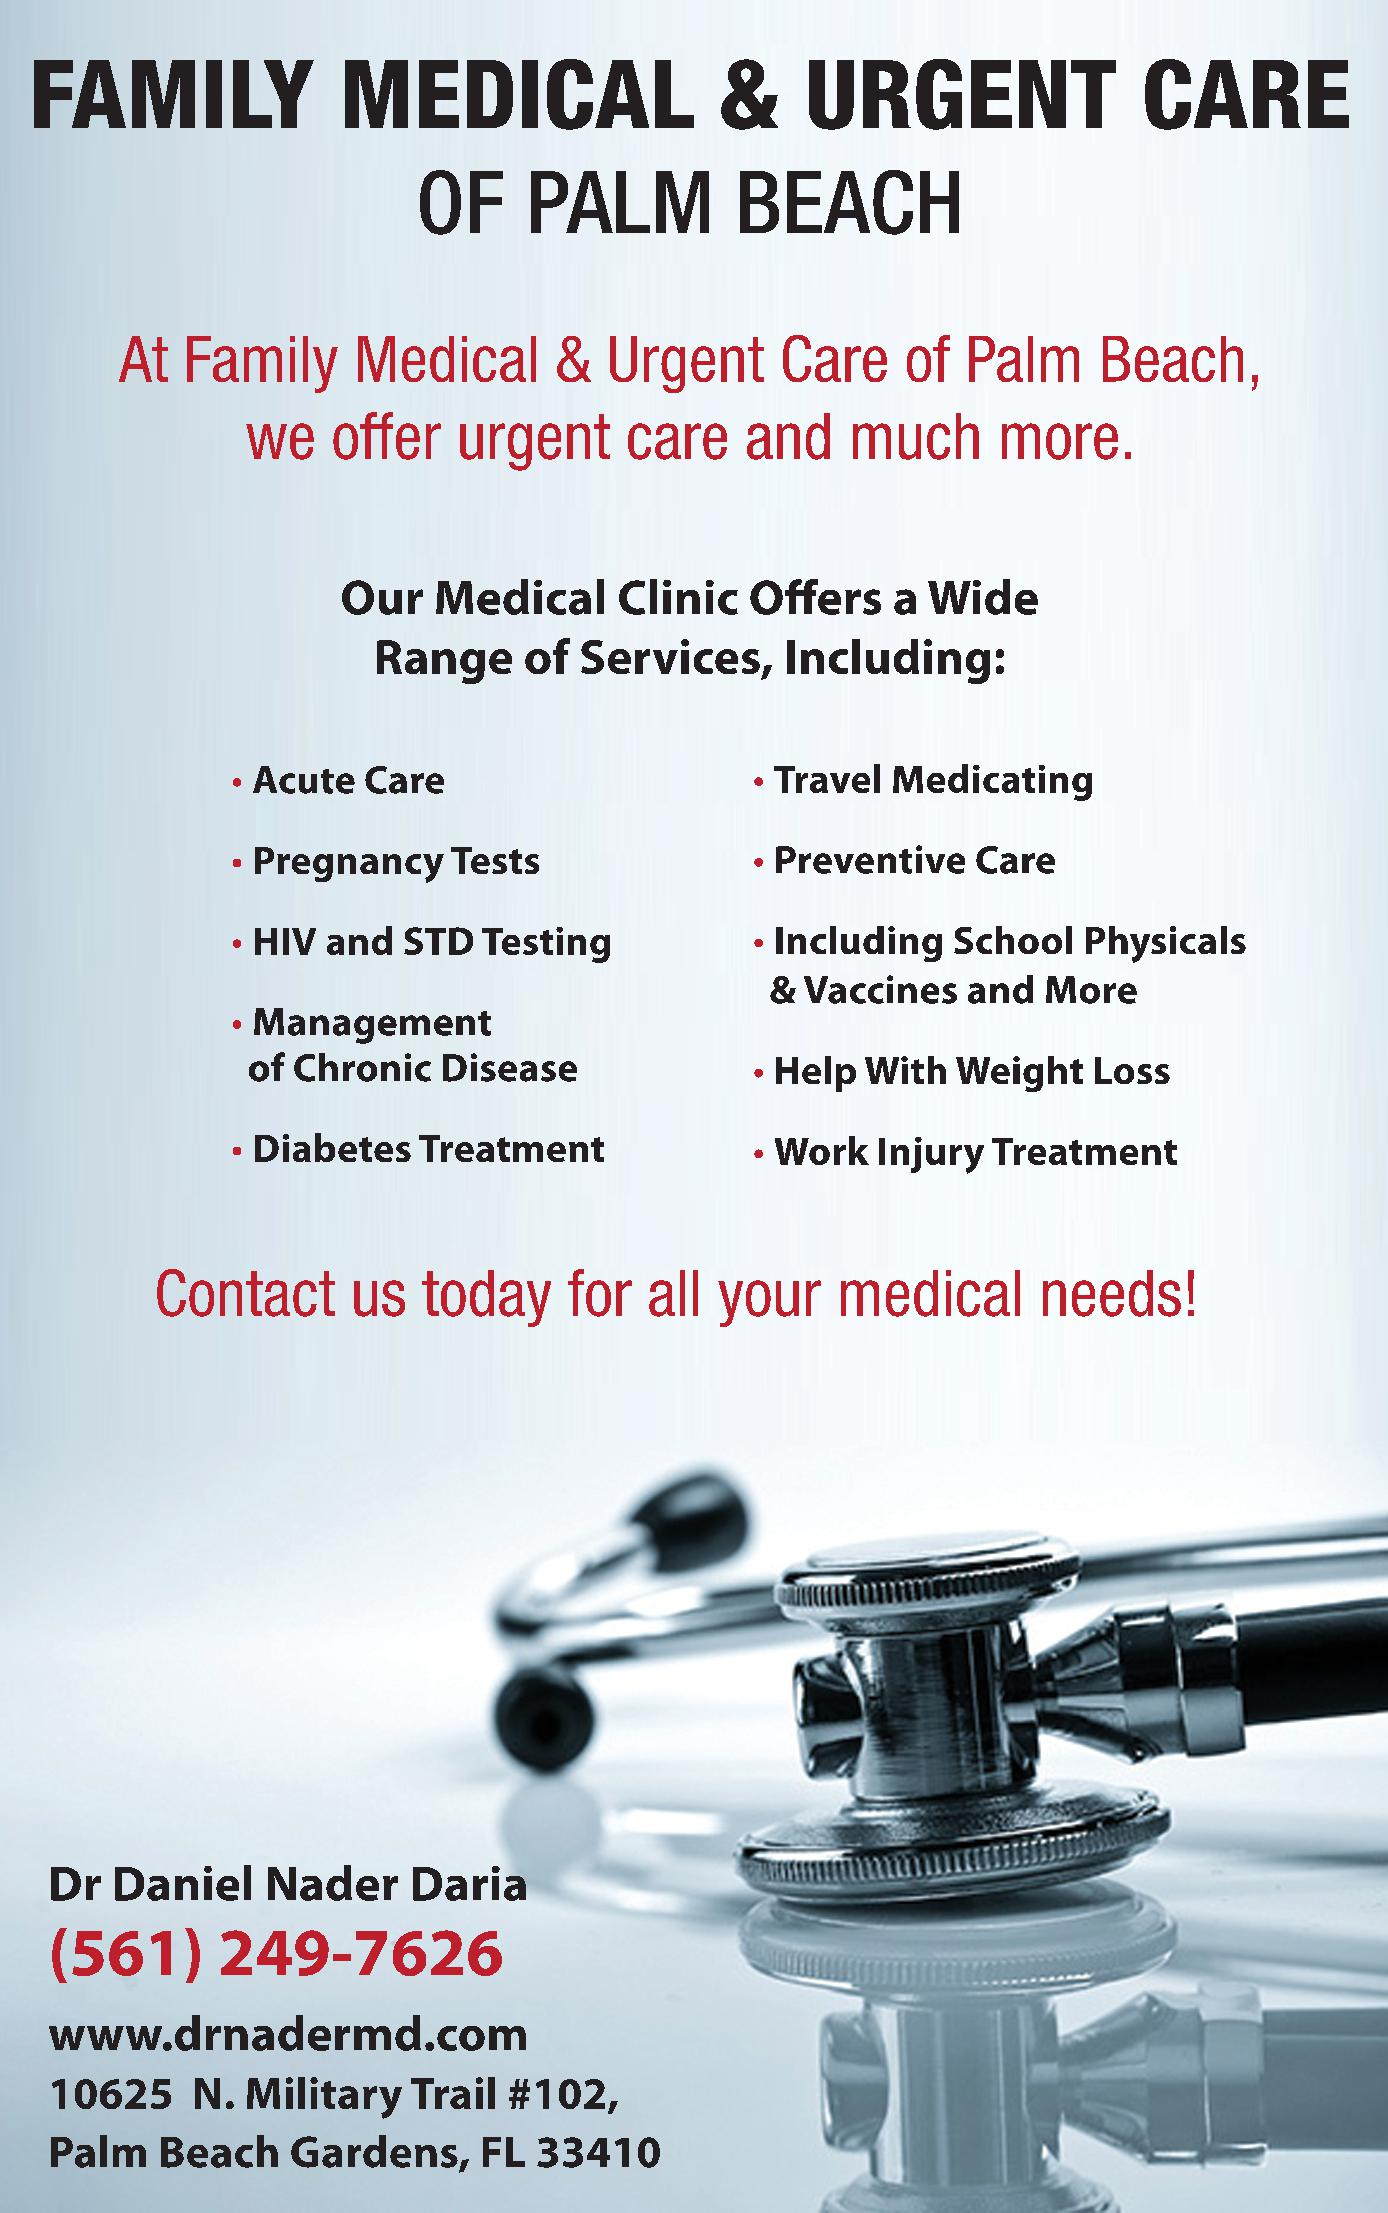 Medical & Urgent Care of Palm Beach - Daryaee